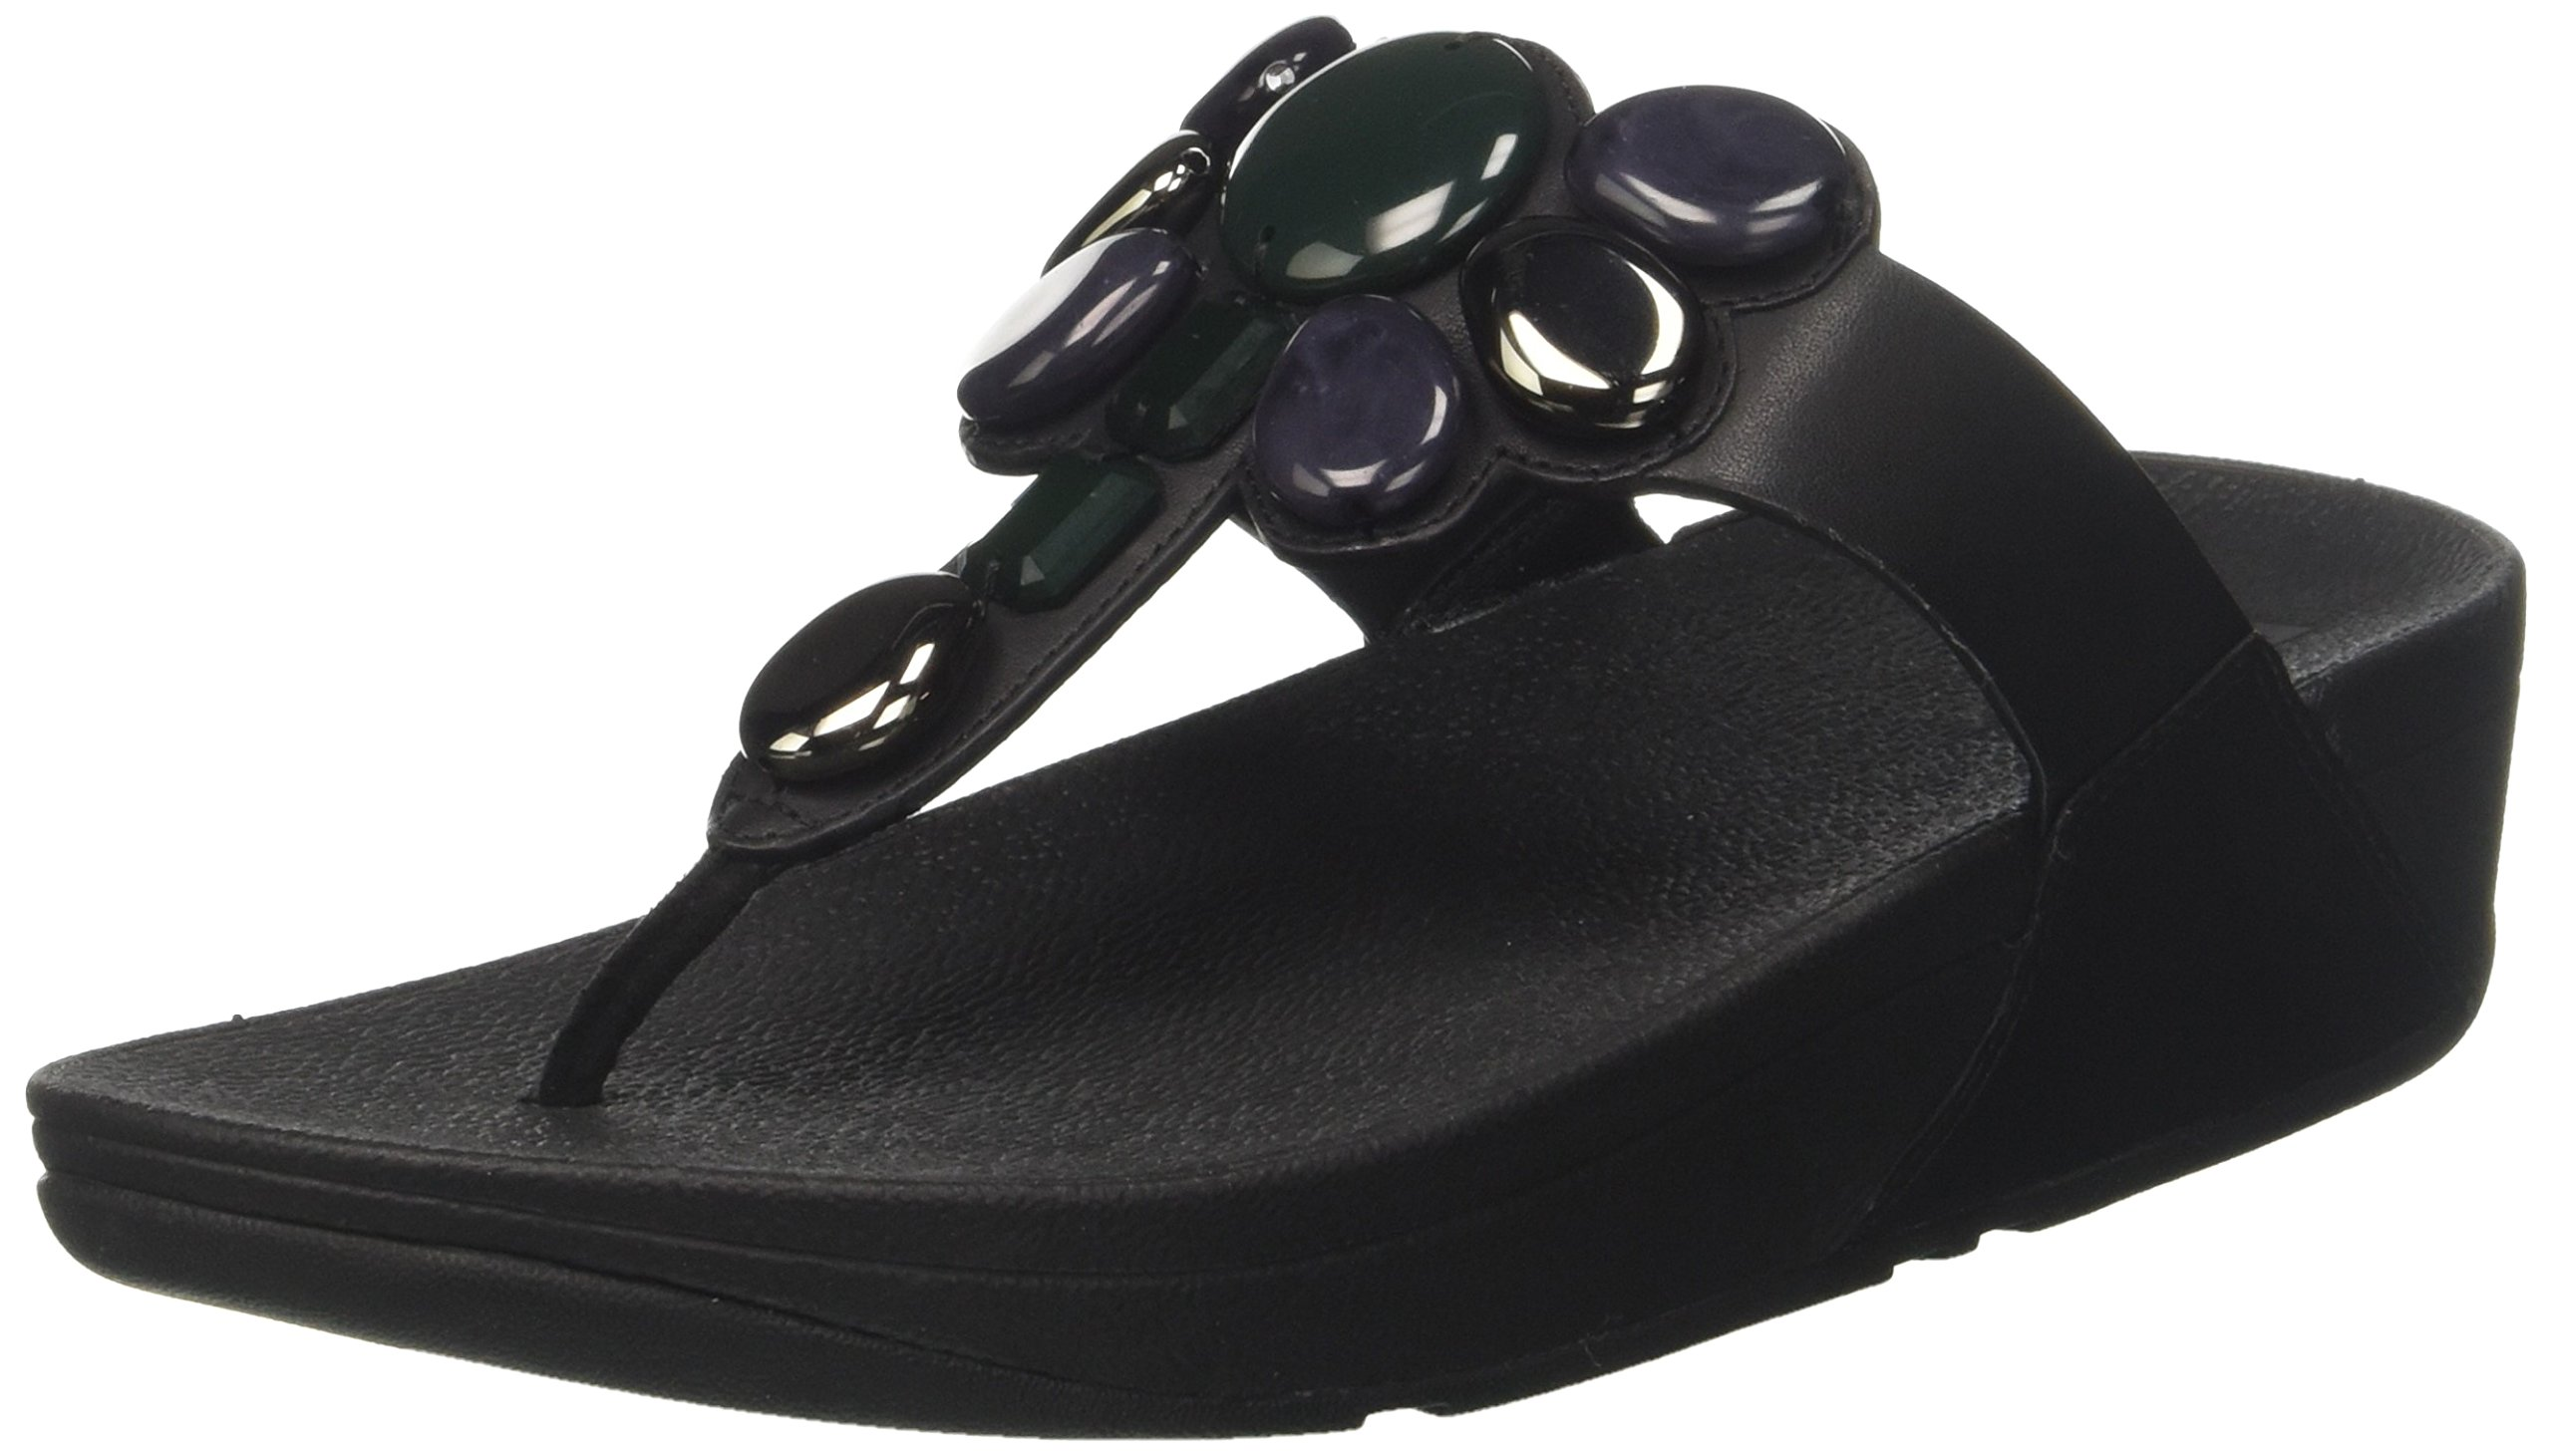 00140 Eu thongTongs FemmeNoirnero Fitflop Honeybee Toe GjqLSMVpUz